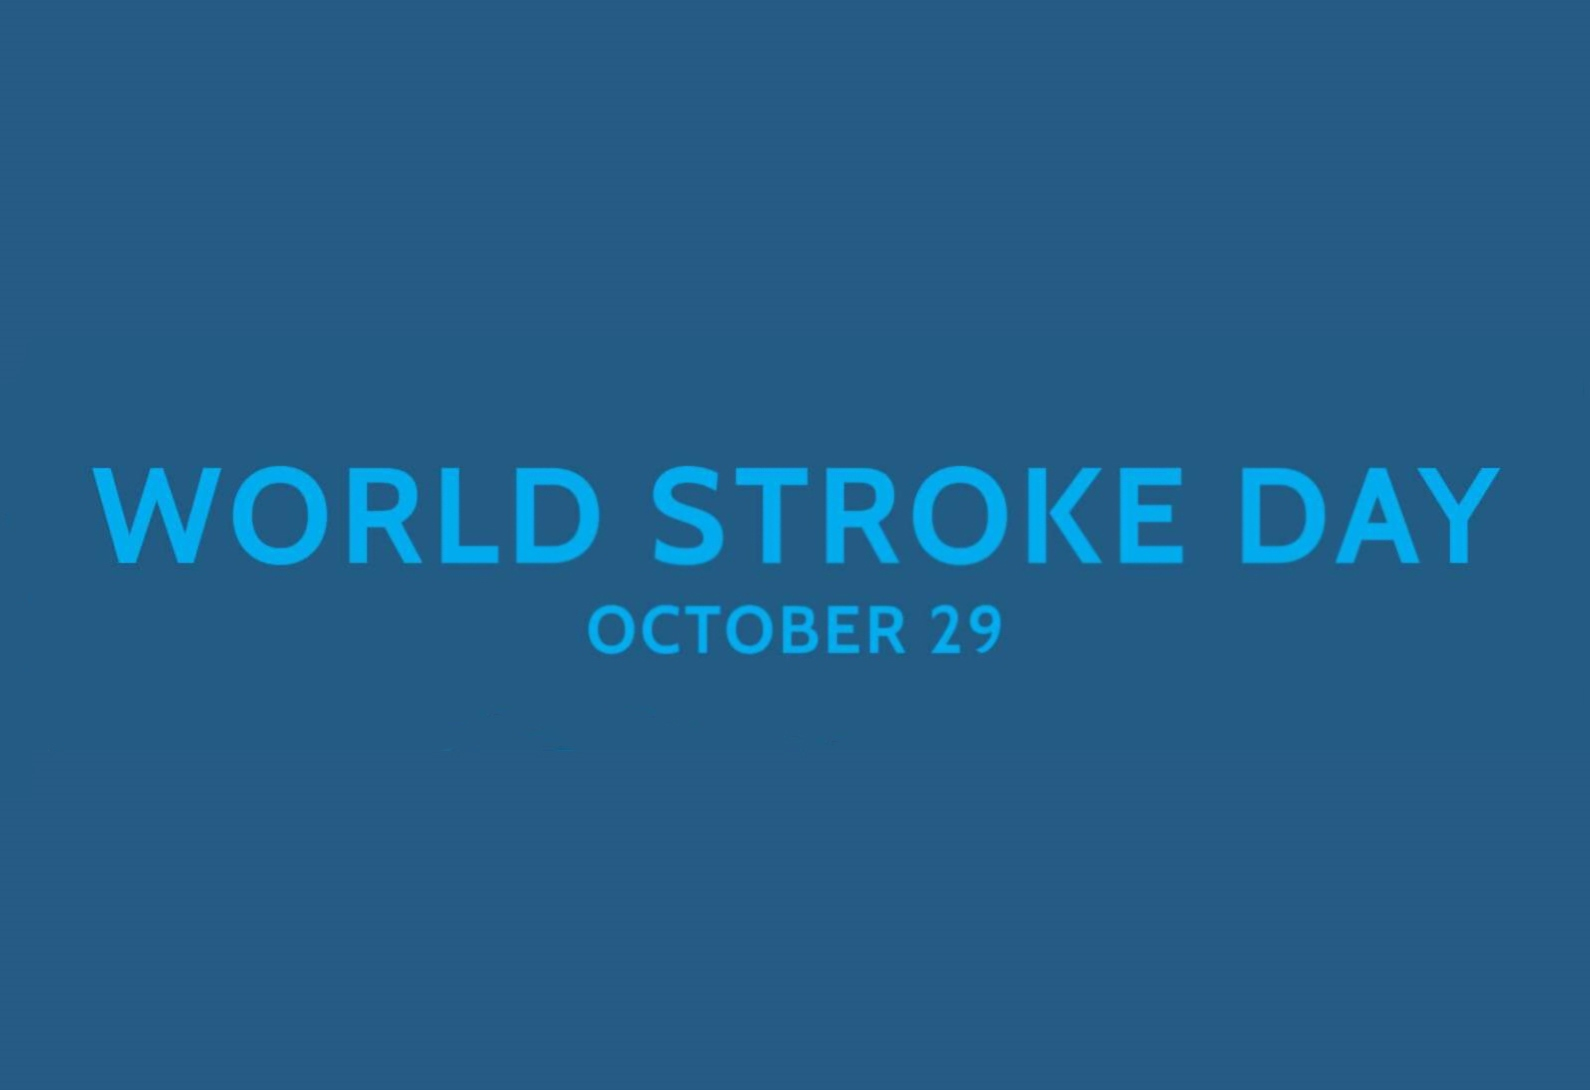 worldstrokeday-virtualdr